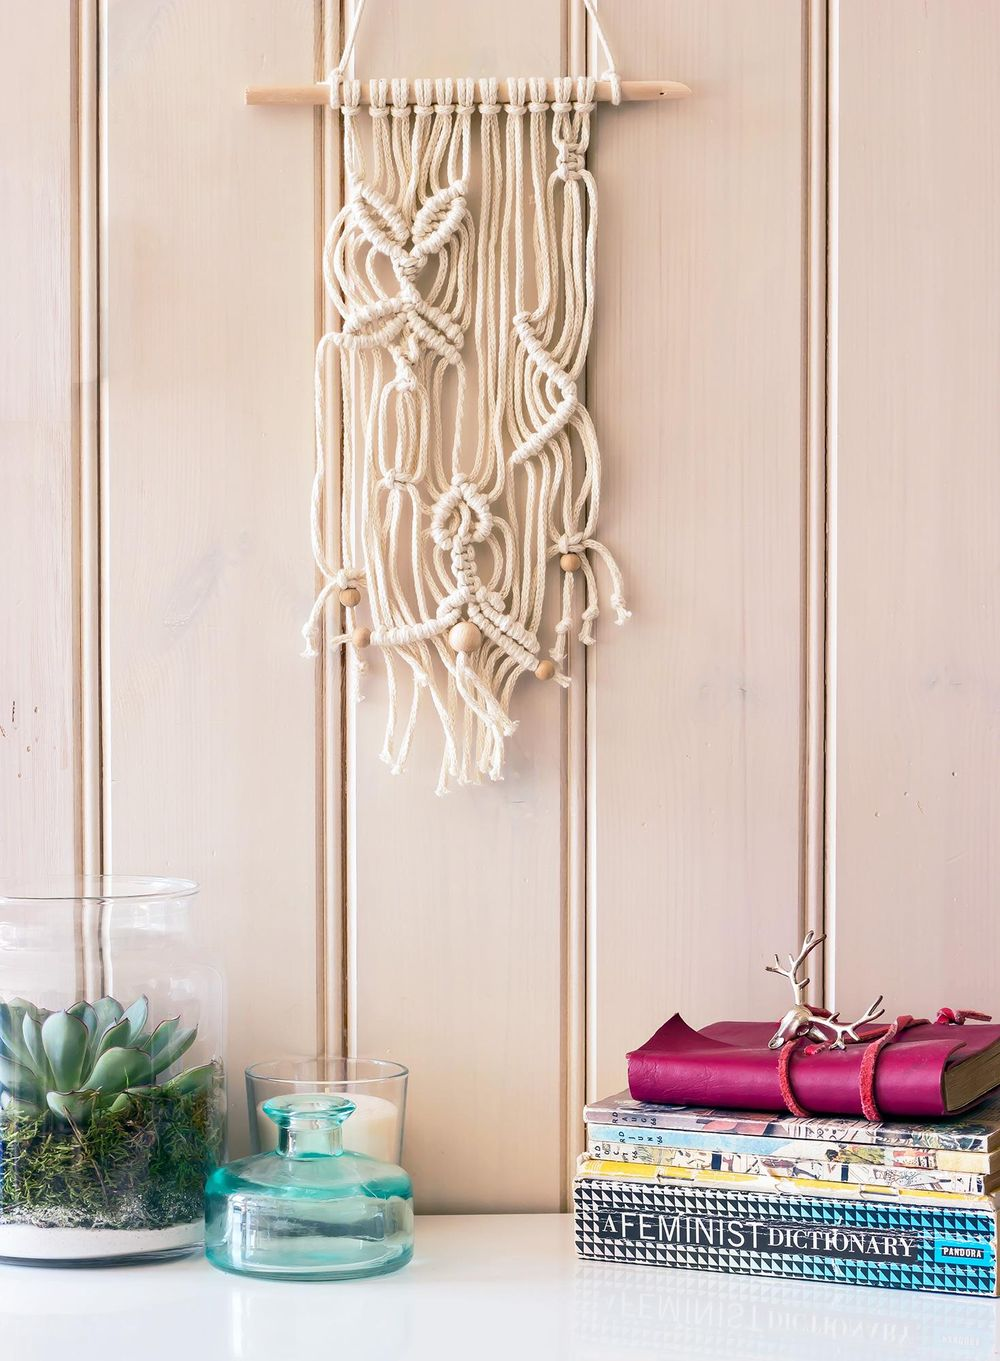 SHEESO - Handmade Macrame Products - image 3 - student project